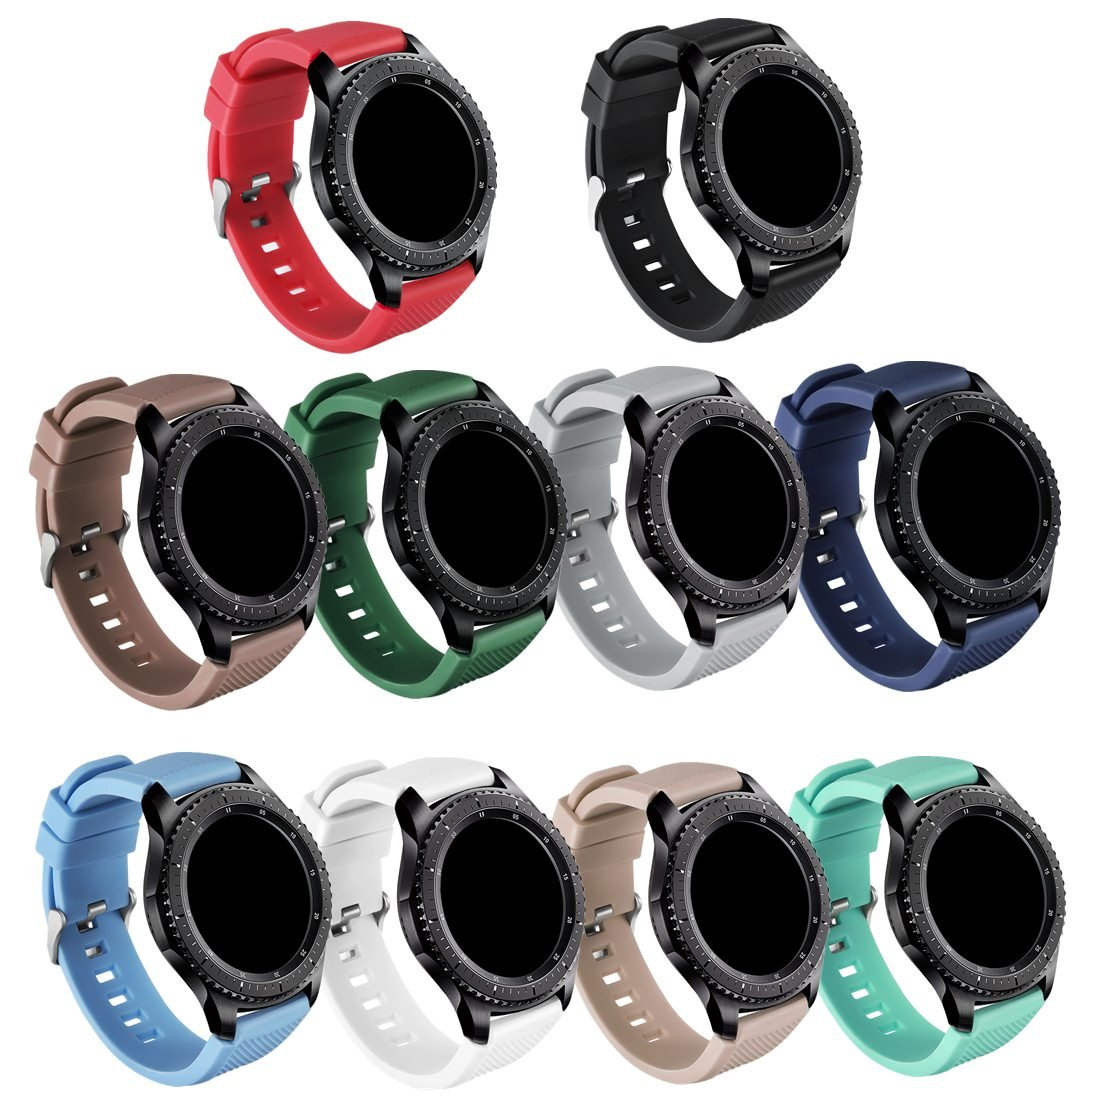 GinCoband Samsung Gear S3 Bands Replacement Accessories for Samsung Gear S3 Frontier and Gear S3 Classic Smart Watch 10 Color No Tracker (10-Pack, Watch Buckle Design) by GinCoband